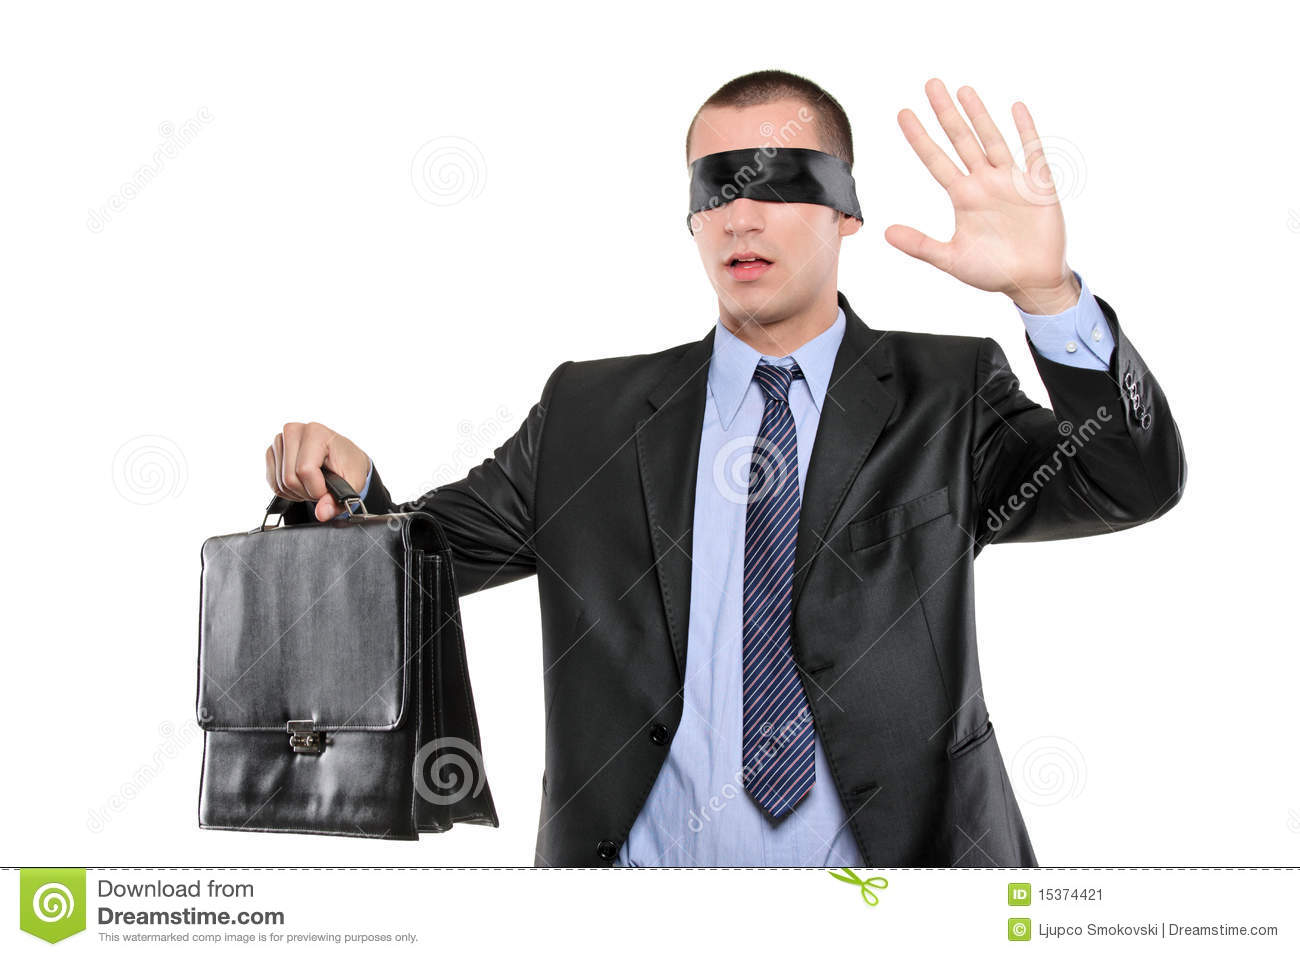 aaadeefdacf Confused Blindfold Businessman With Briefcase Stock Image - Image of ...